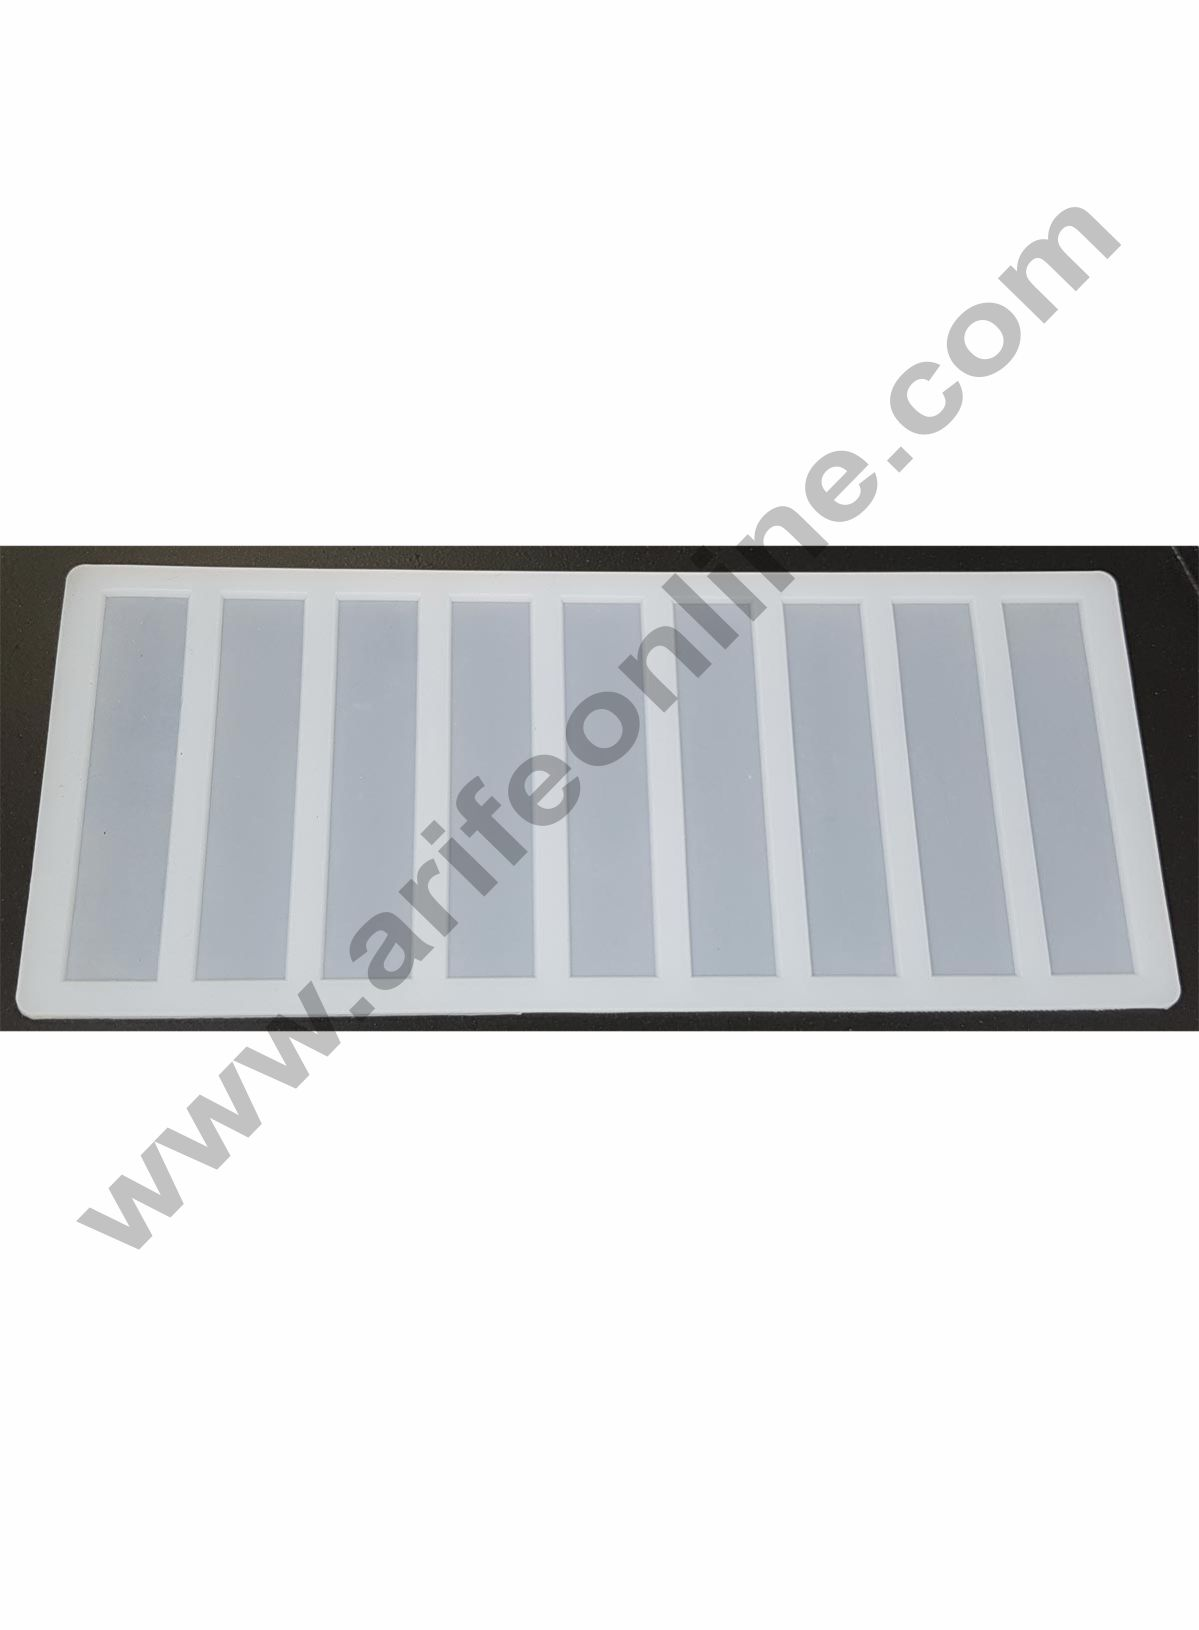 Cake Decor Silicon 9 in 1 Small Rectangle Chocolate Garnishing Mould Cake Insert Decoration Mould